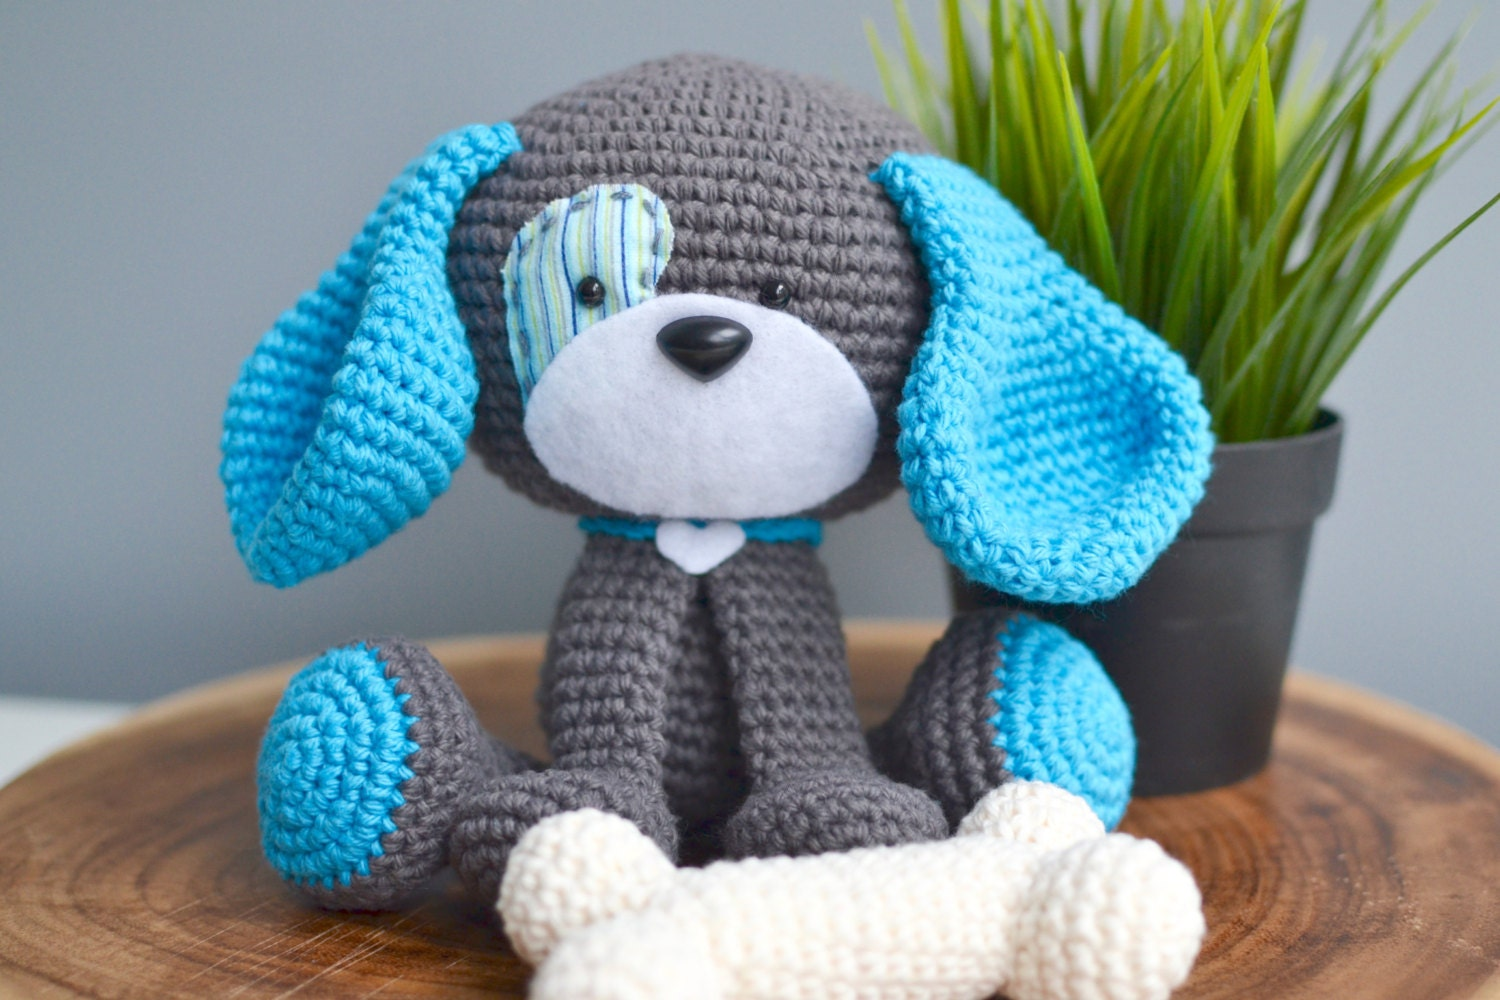 Dolphin Amigurumi Free Crochet Pattern : Cute Dog Crochet Pattern. Domino The Dog Amigurumi Crochet